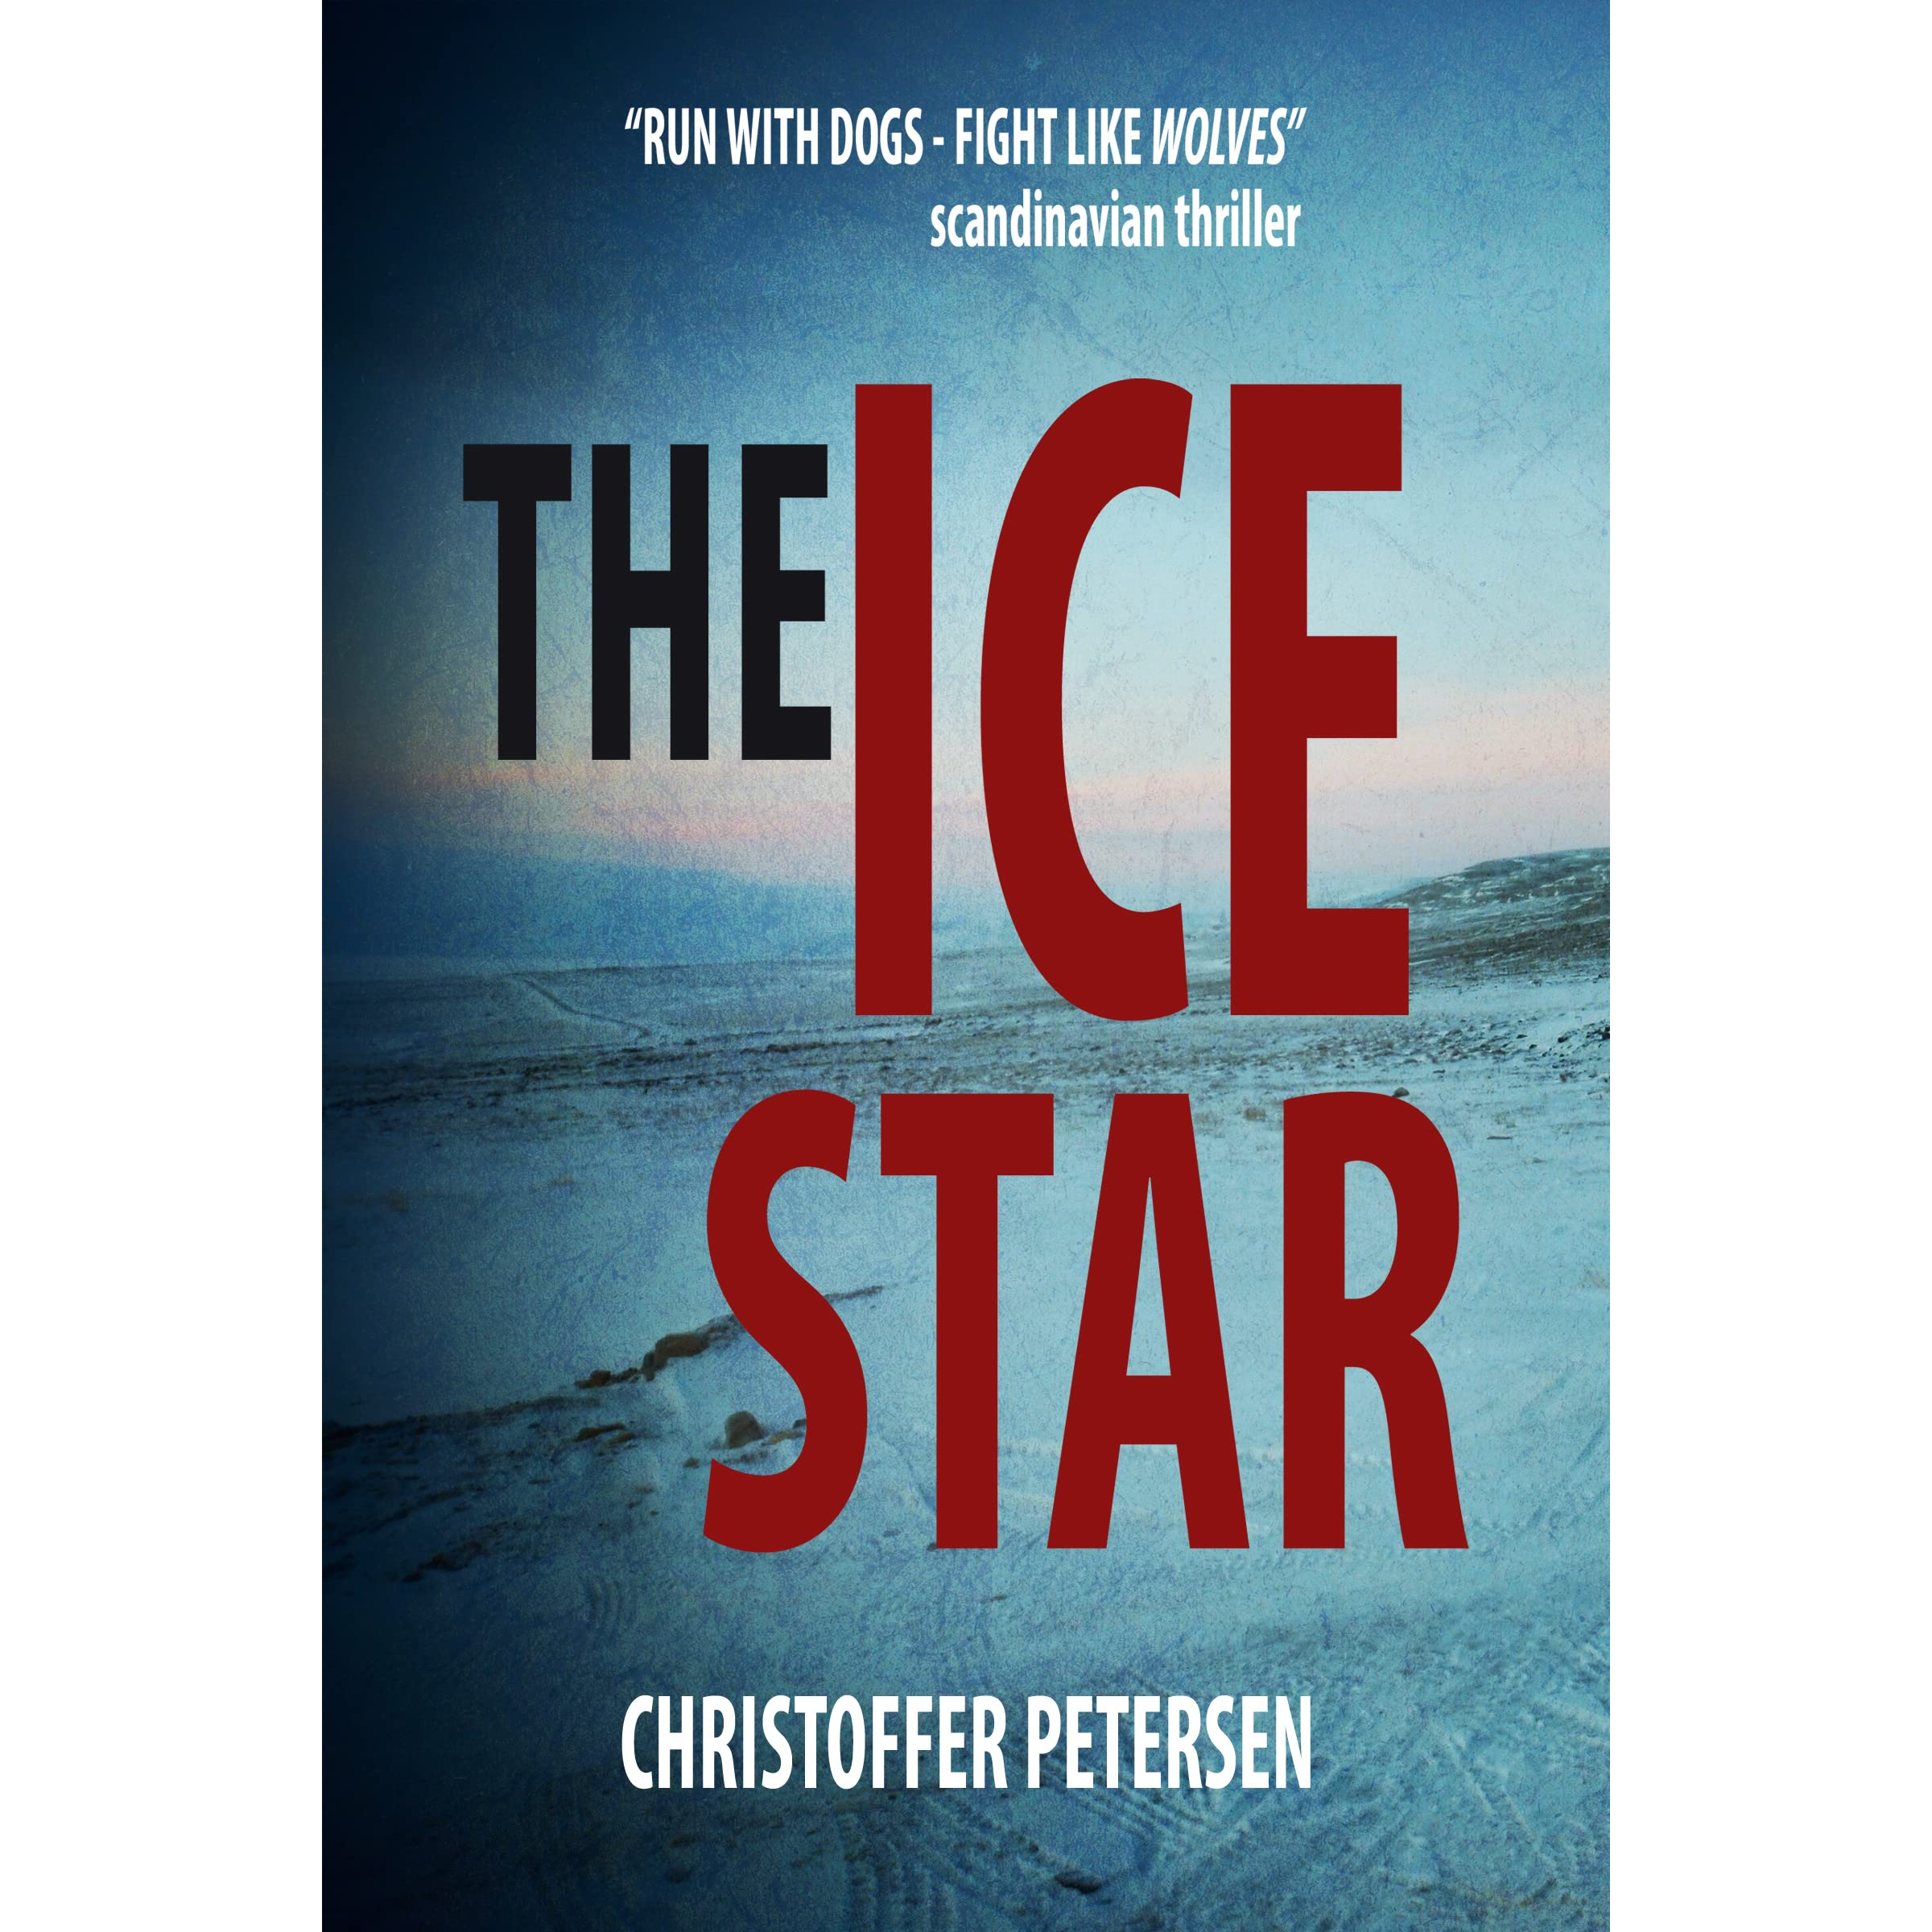 The Ice Star by Christoffer Petersen